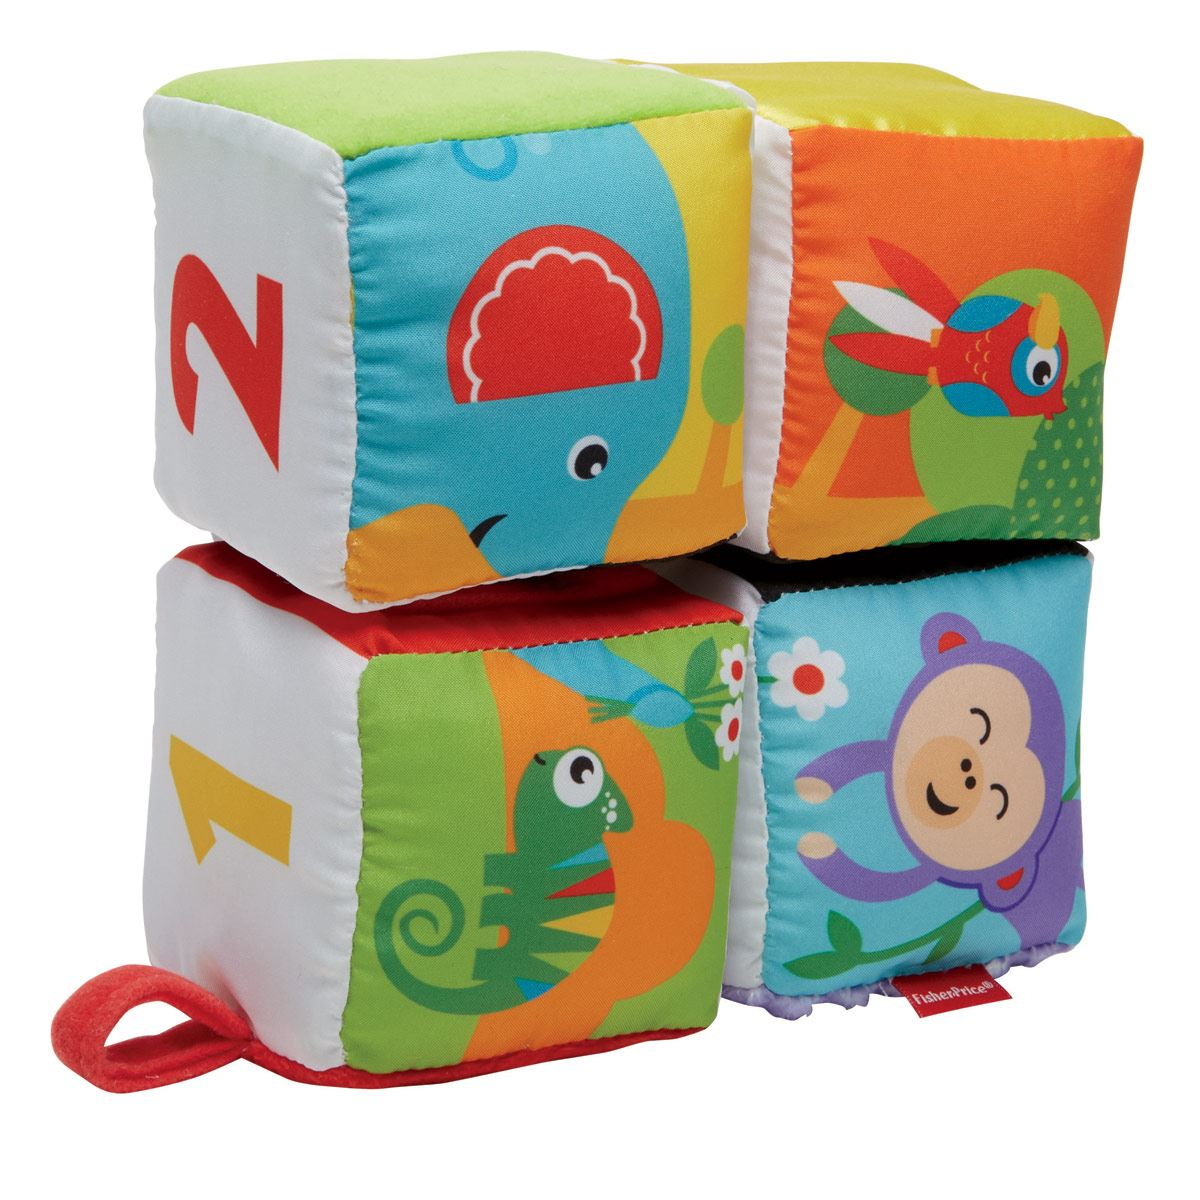 Cubos de Aprendizaje Fisher Price